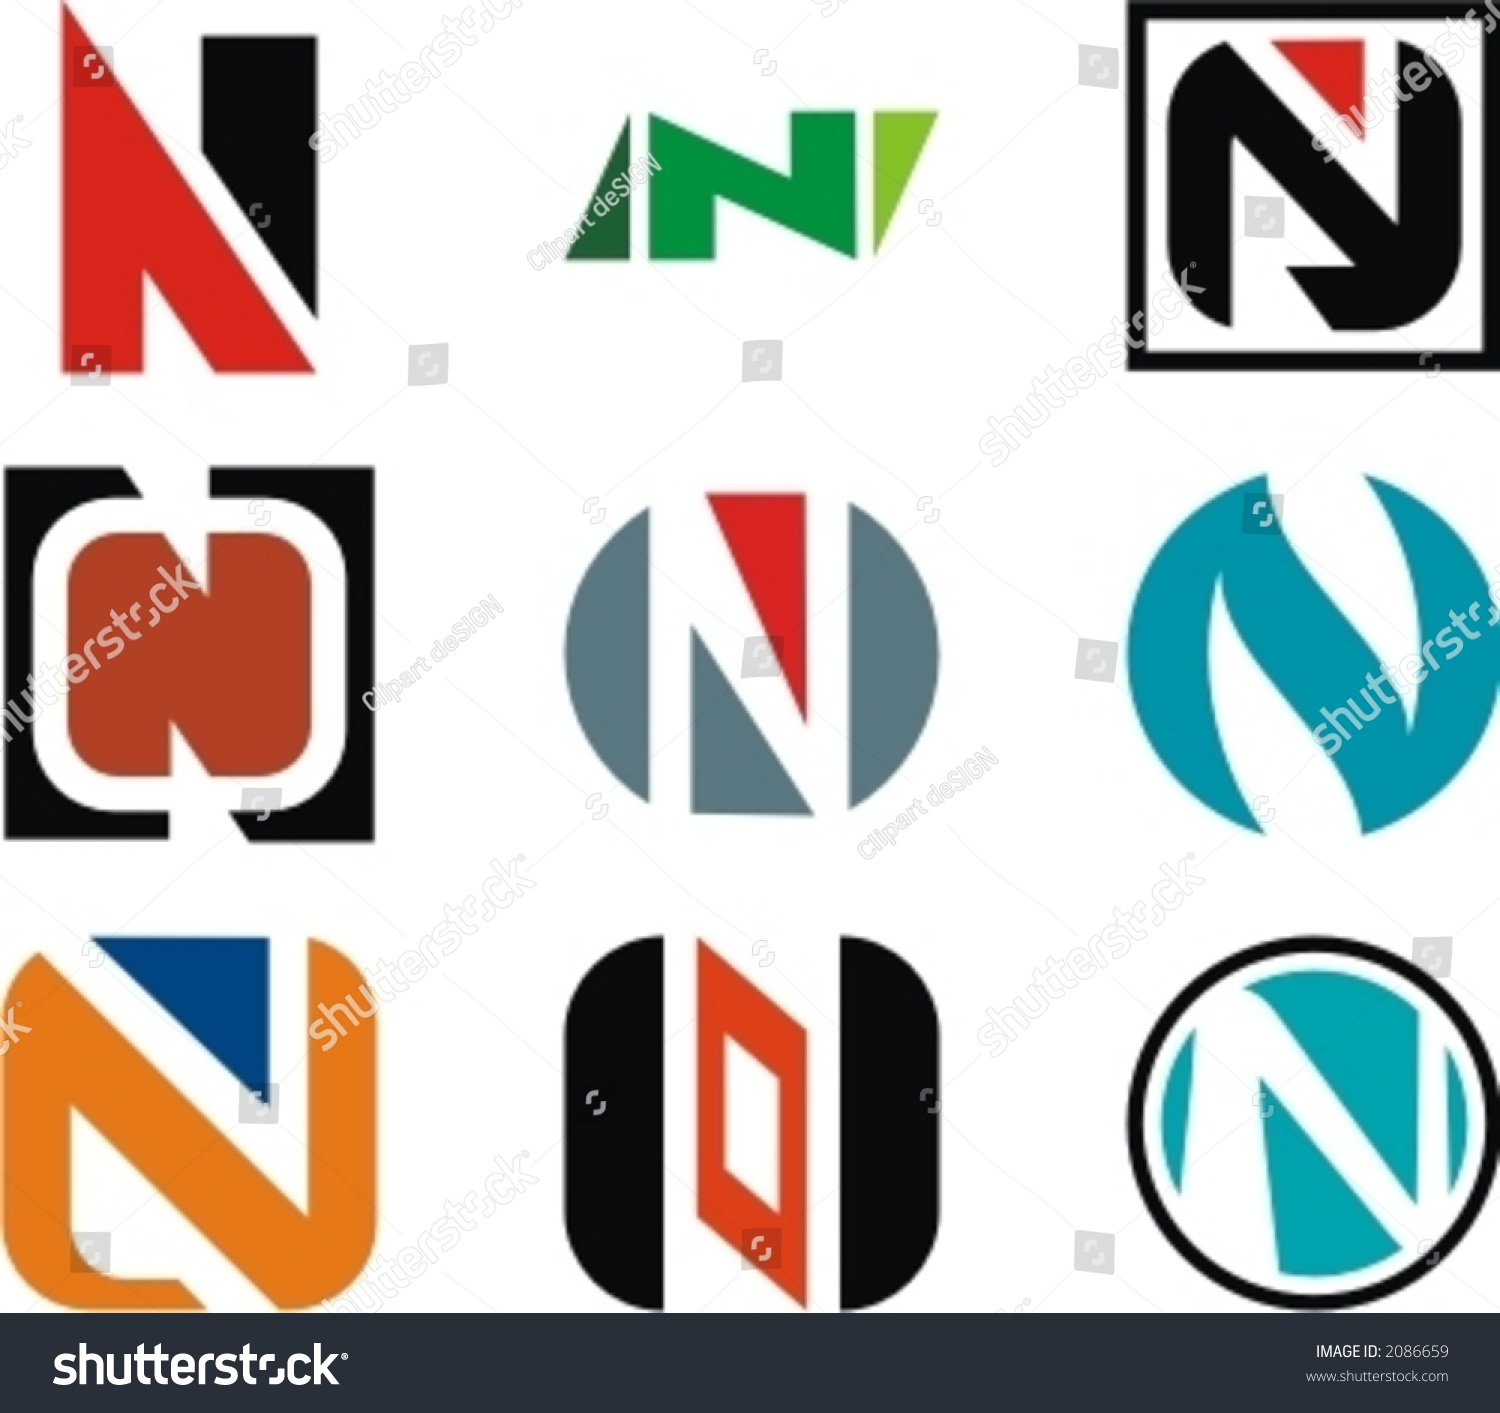 alphabetical logo design concepts letter n stock vector  alphabetical logo design concepts letter n check my portfolio for more of this series